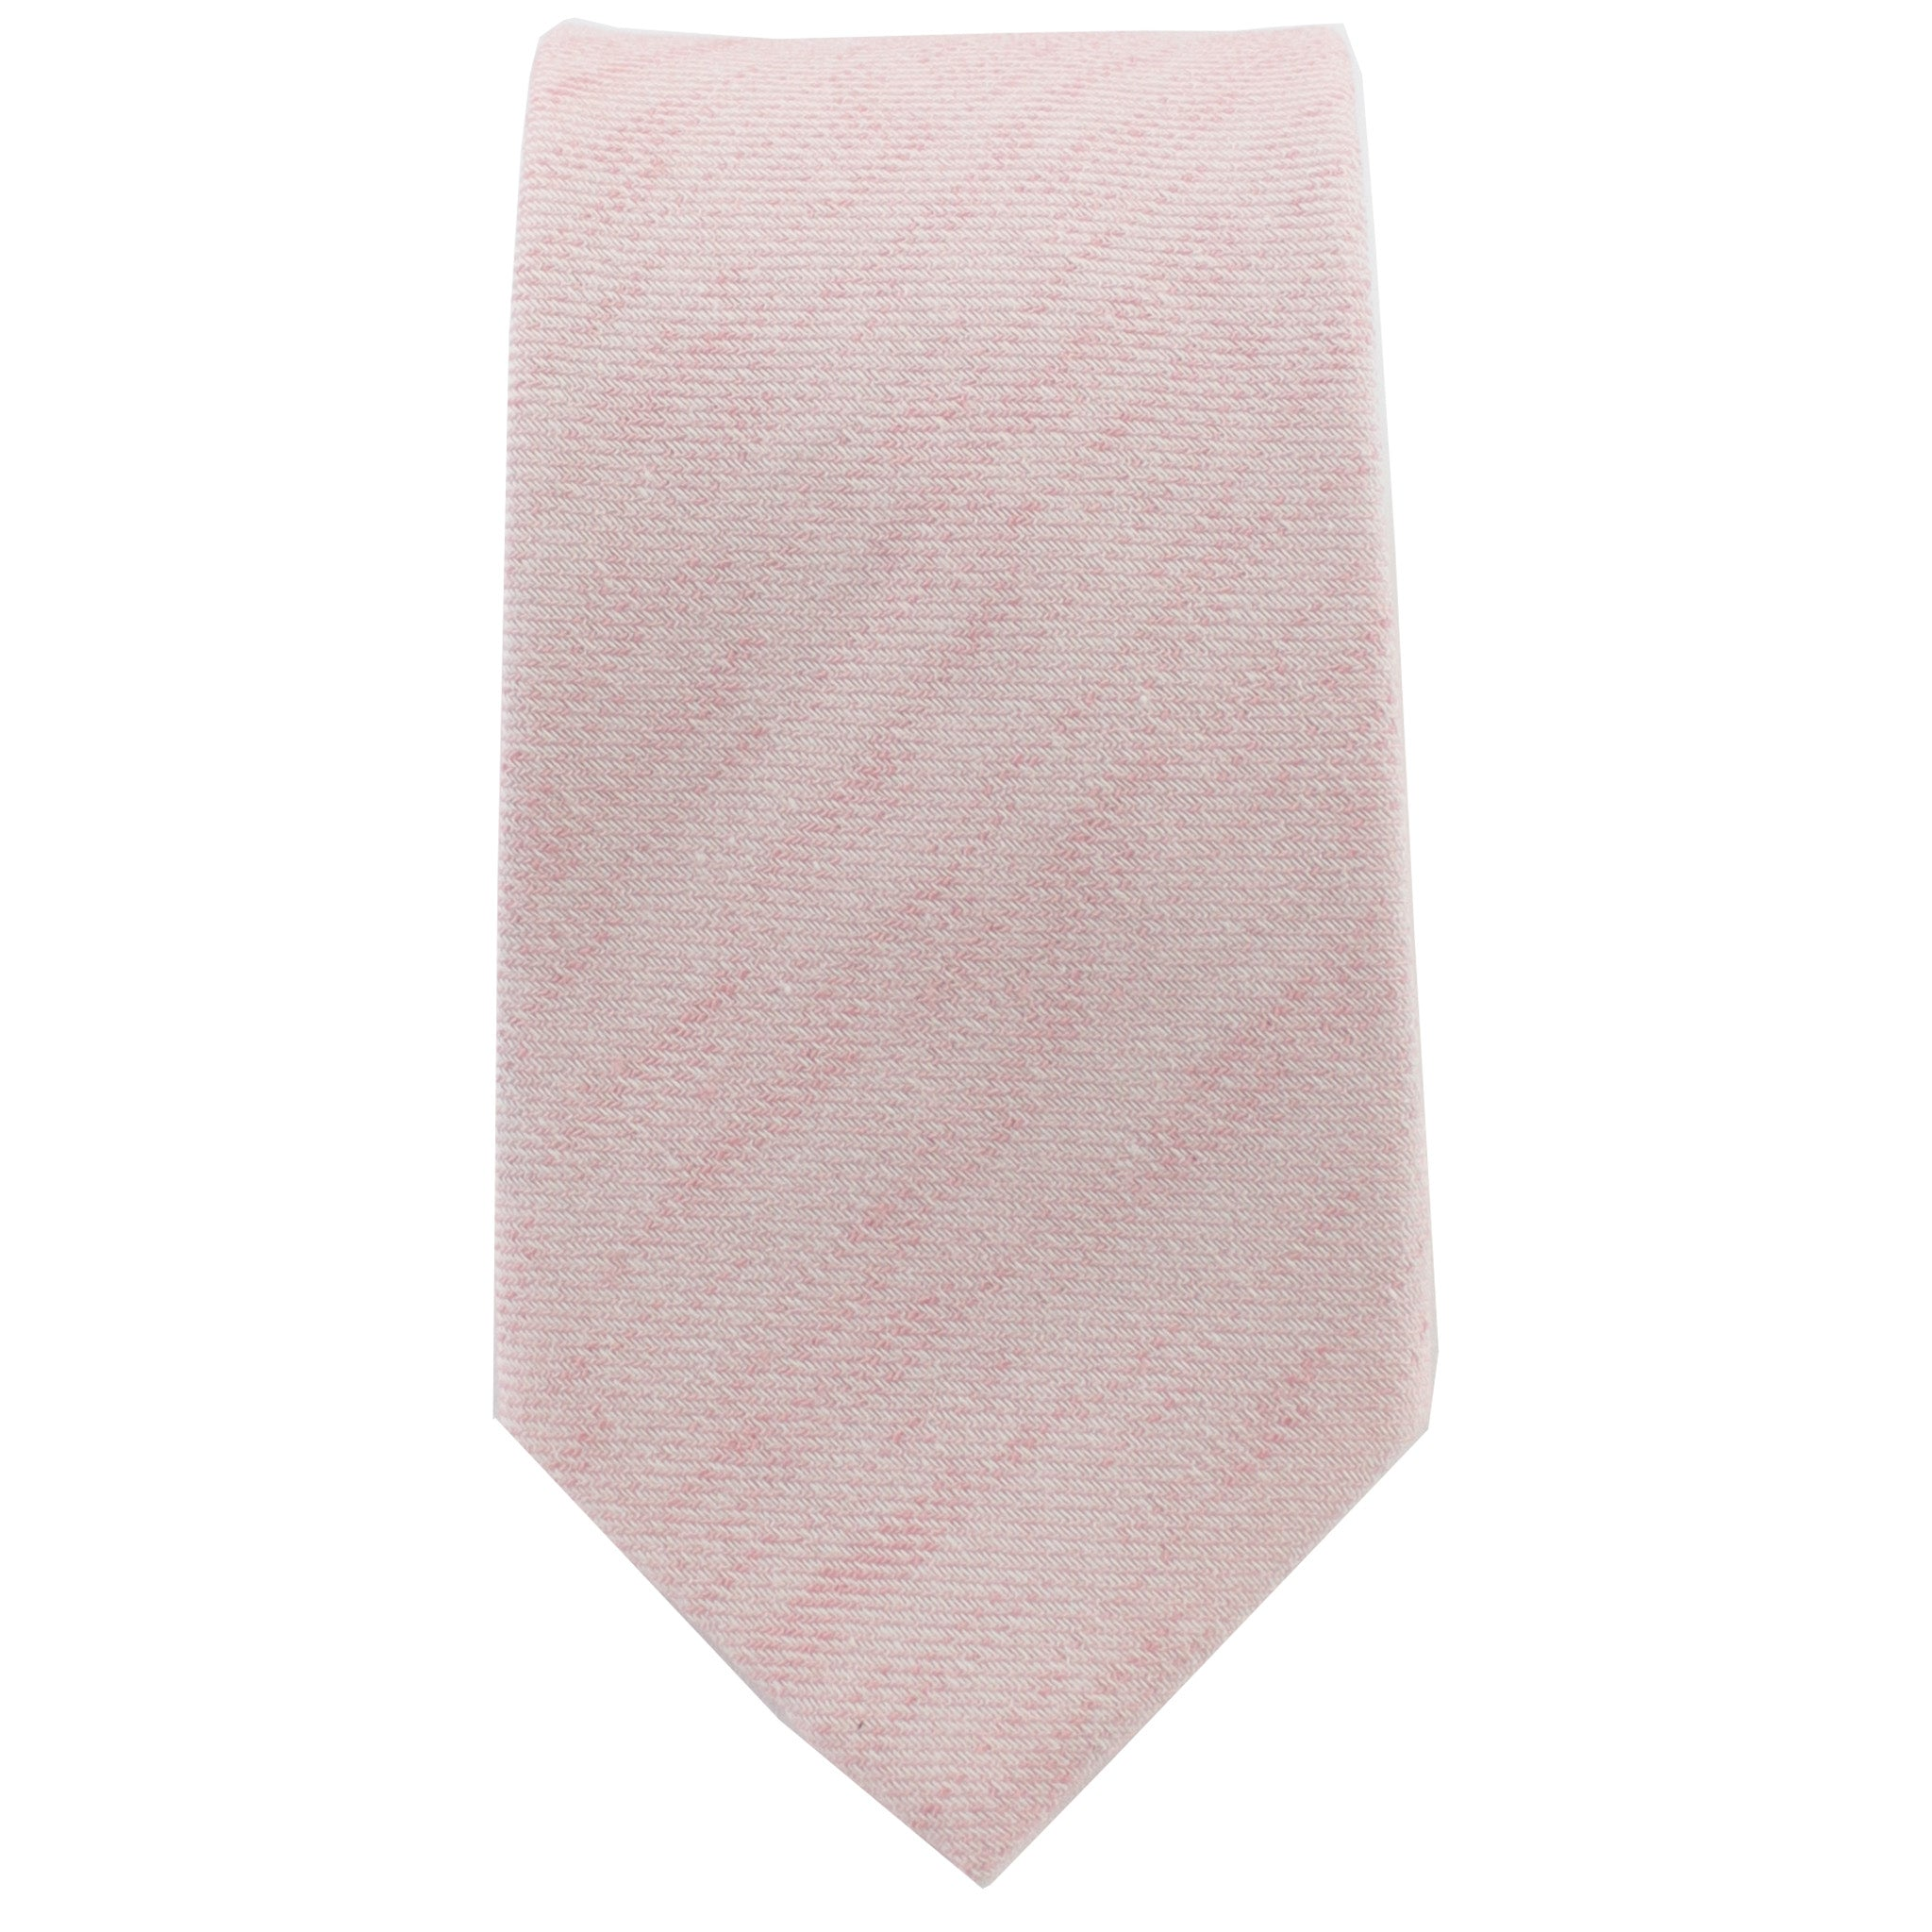 Blush Cloud Tie from DIBI